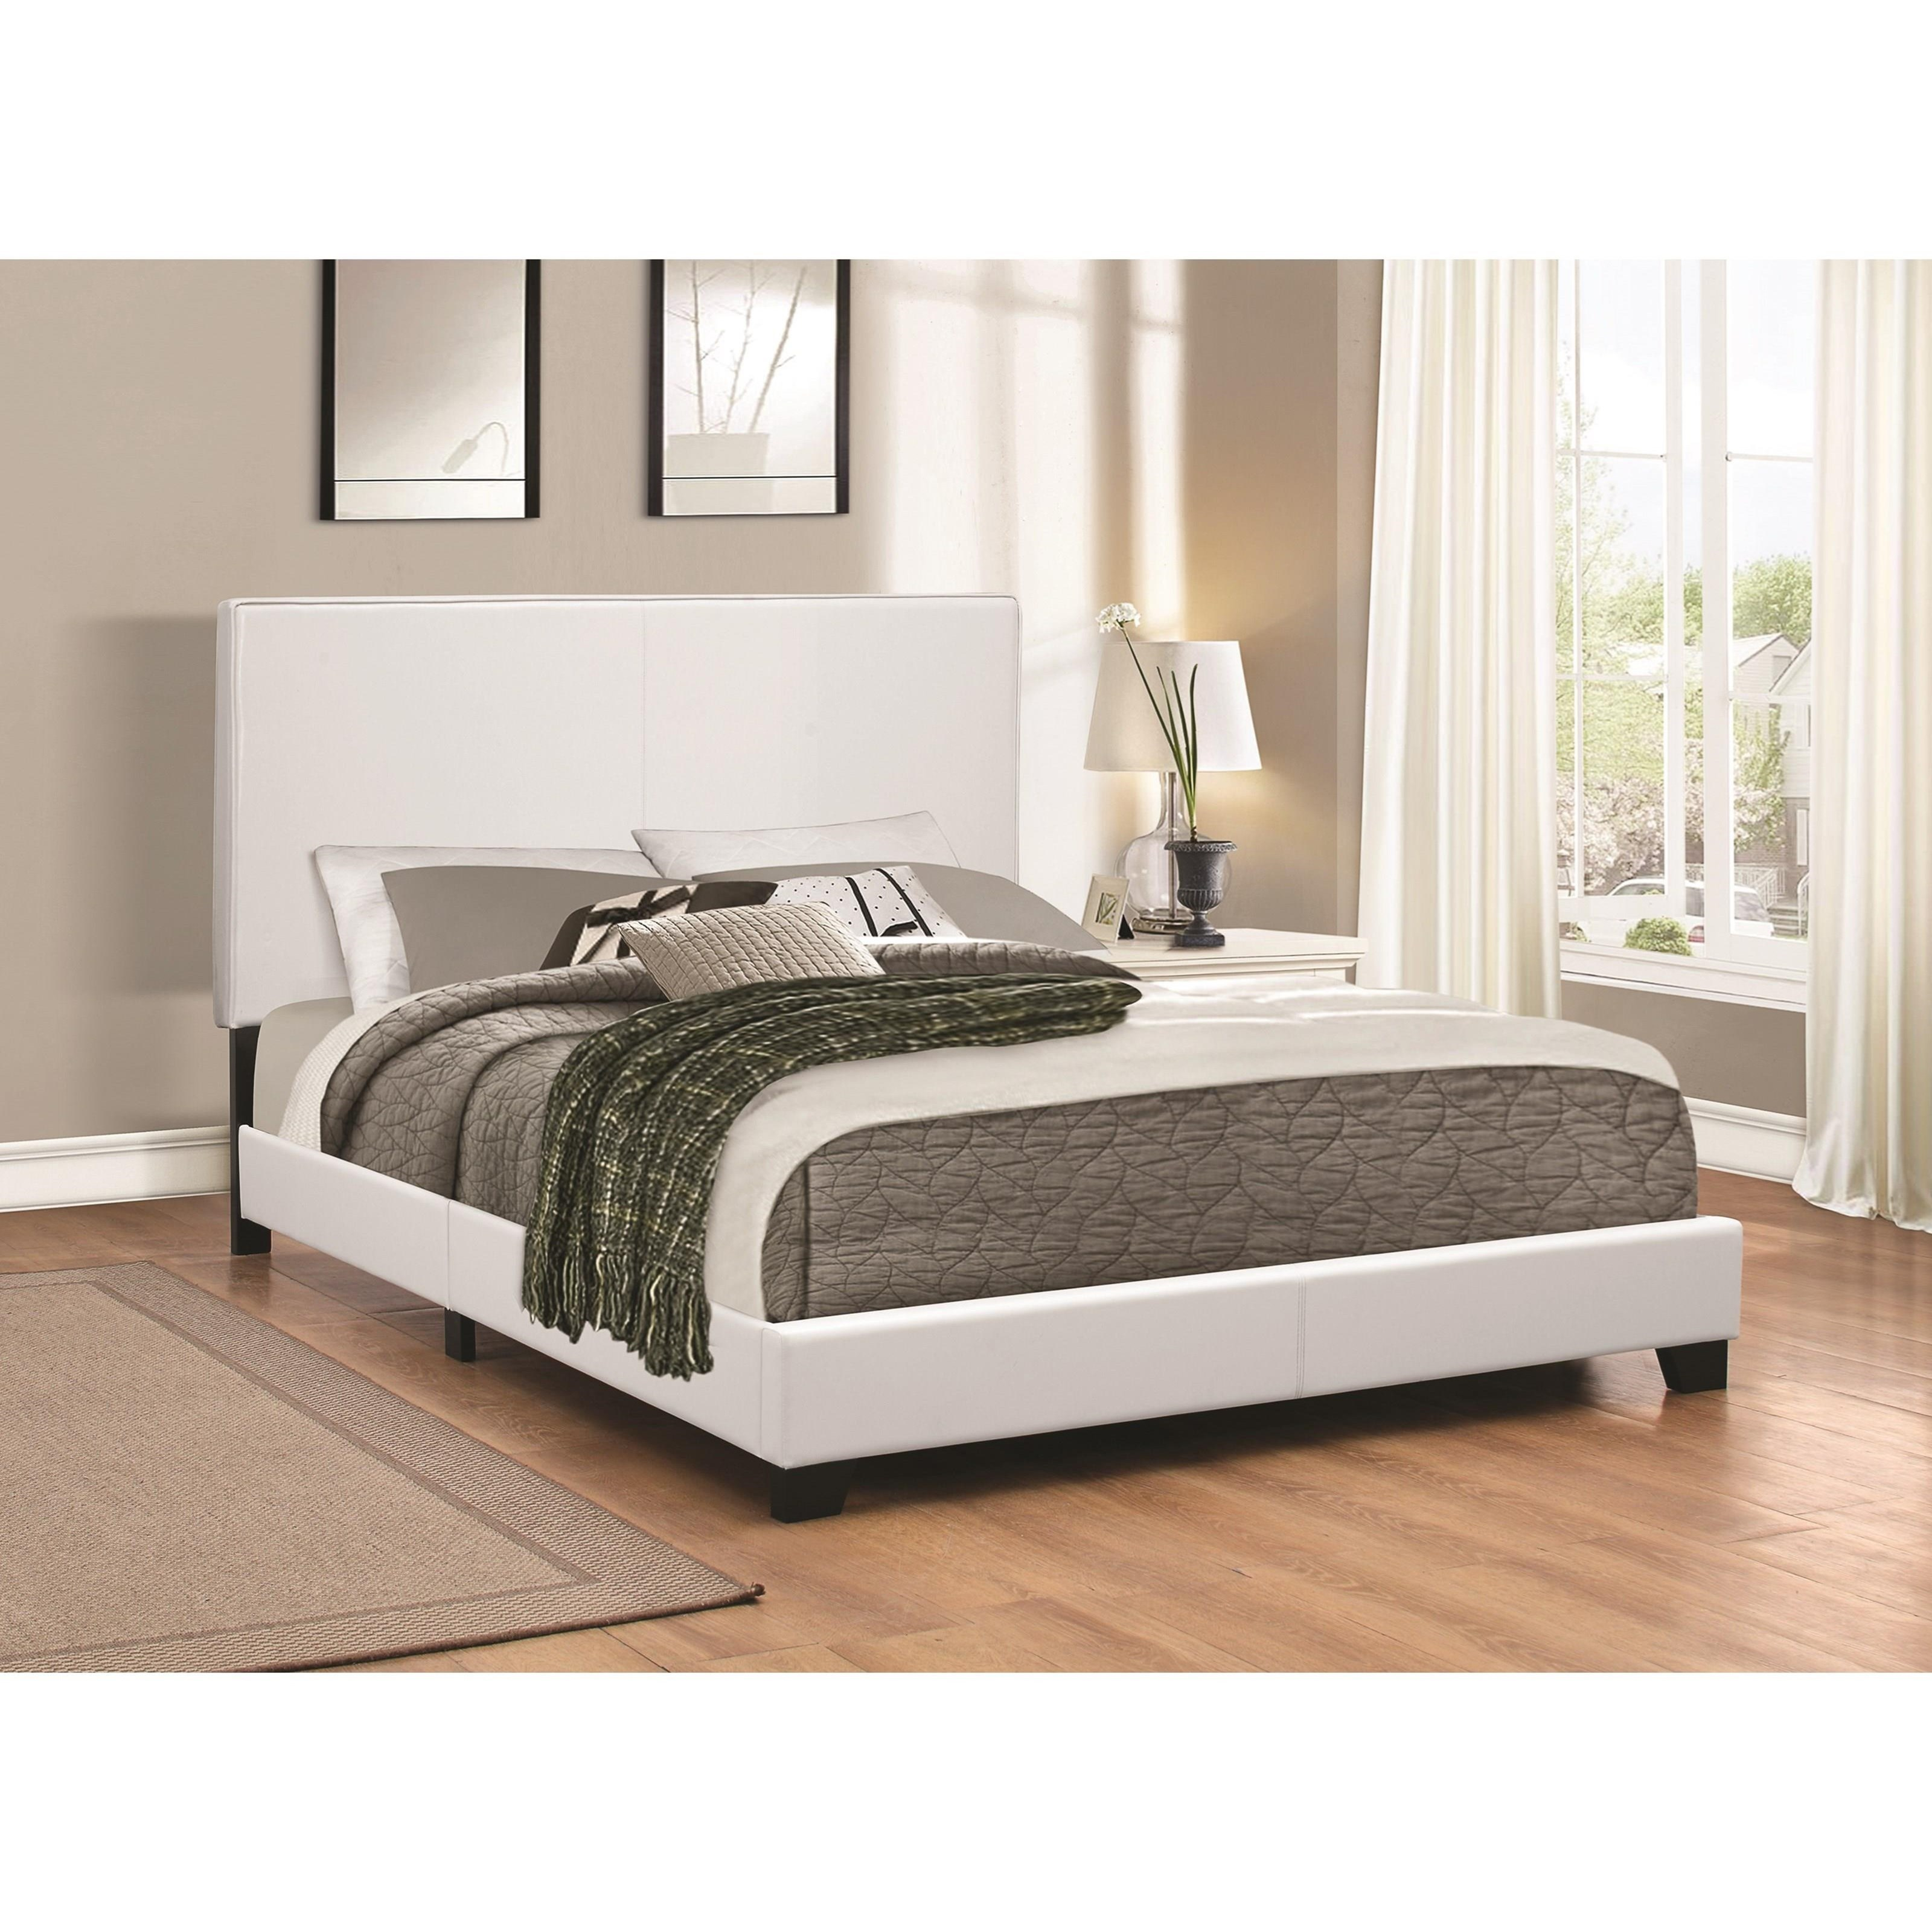 Very Low Platform Bed Coaster Upholstered Beds 300559q Upholstered Low Profile